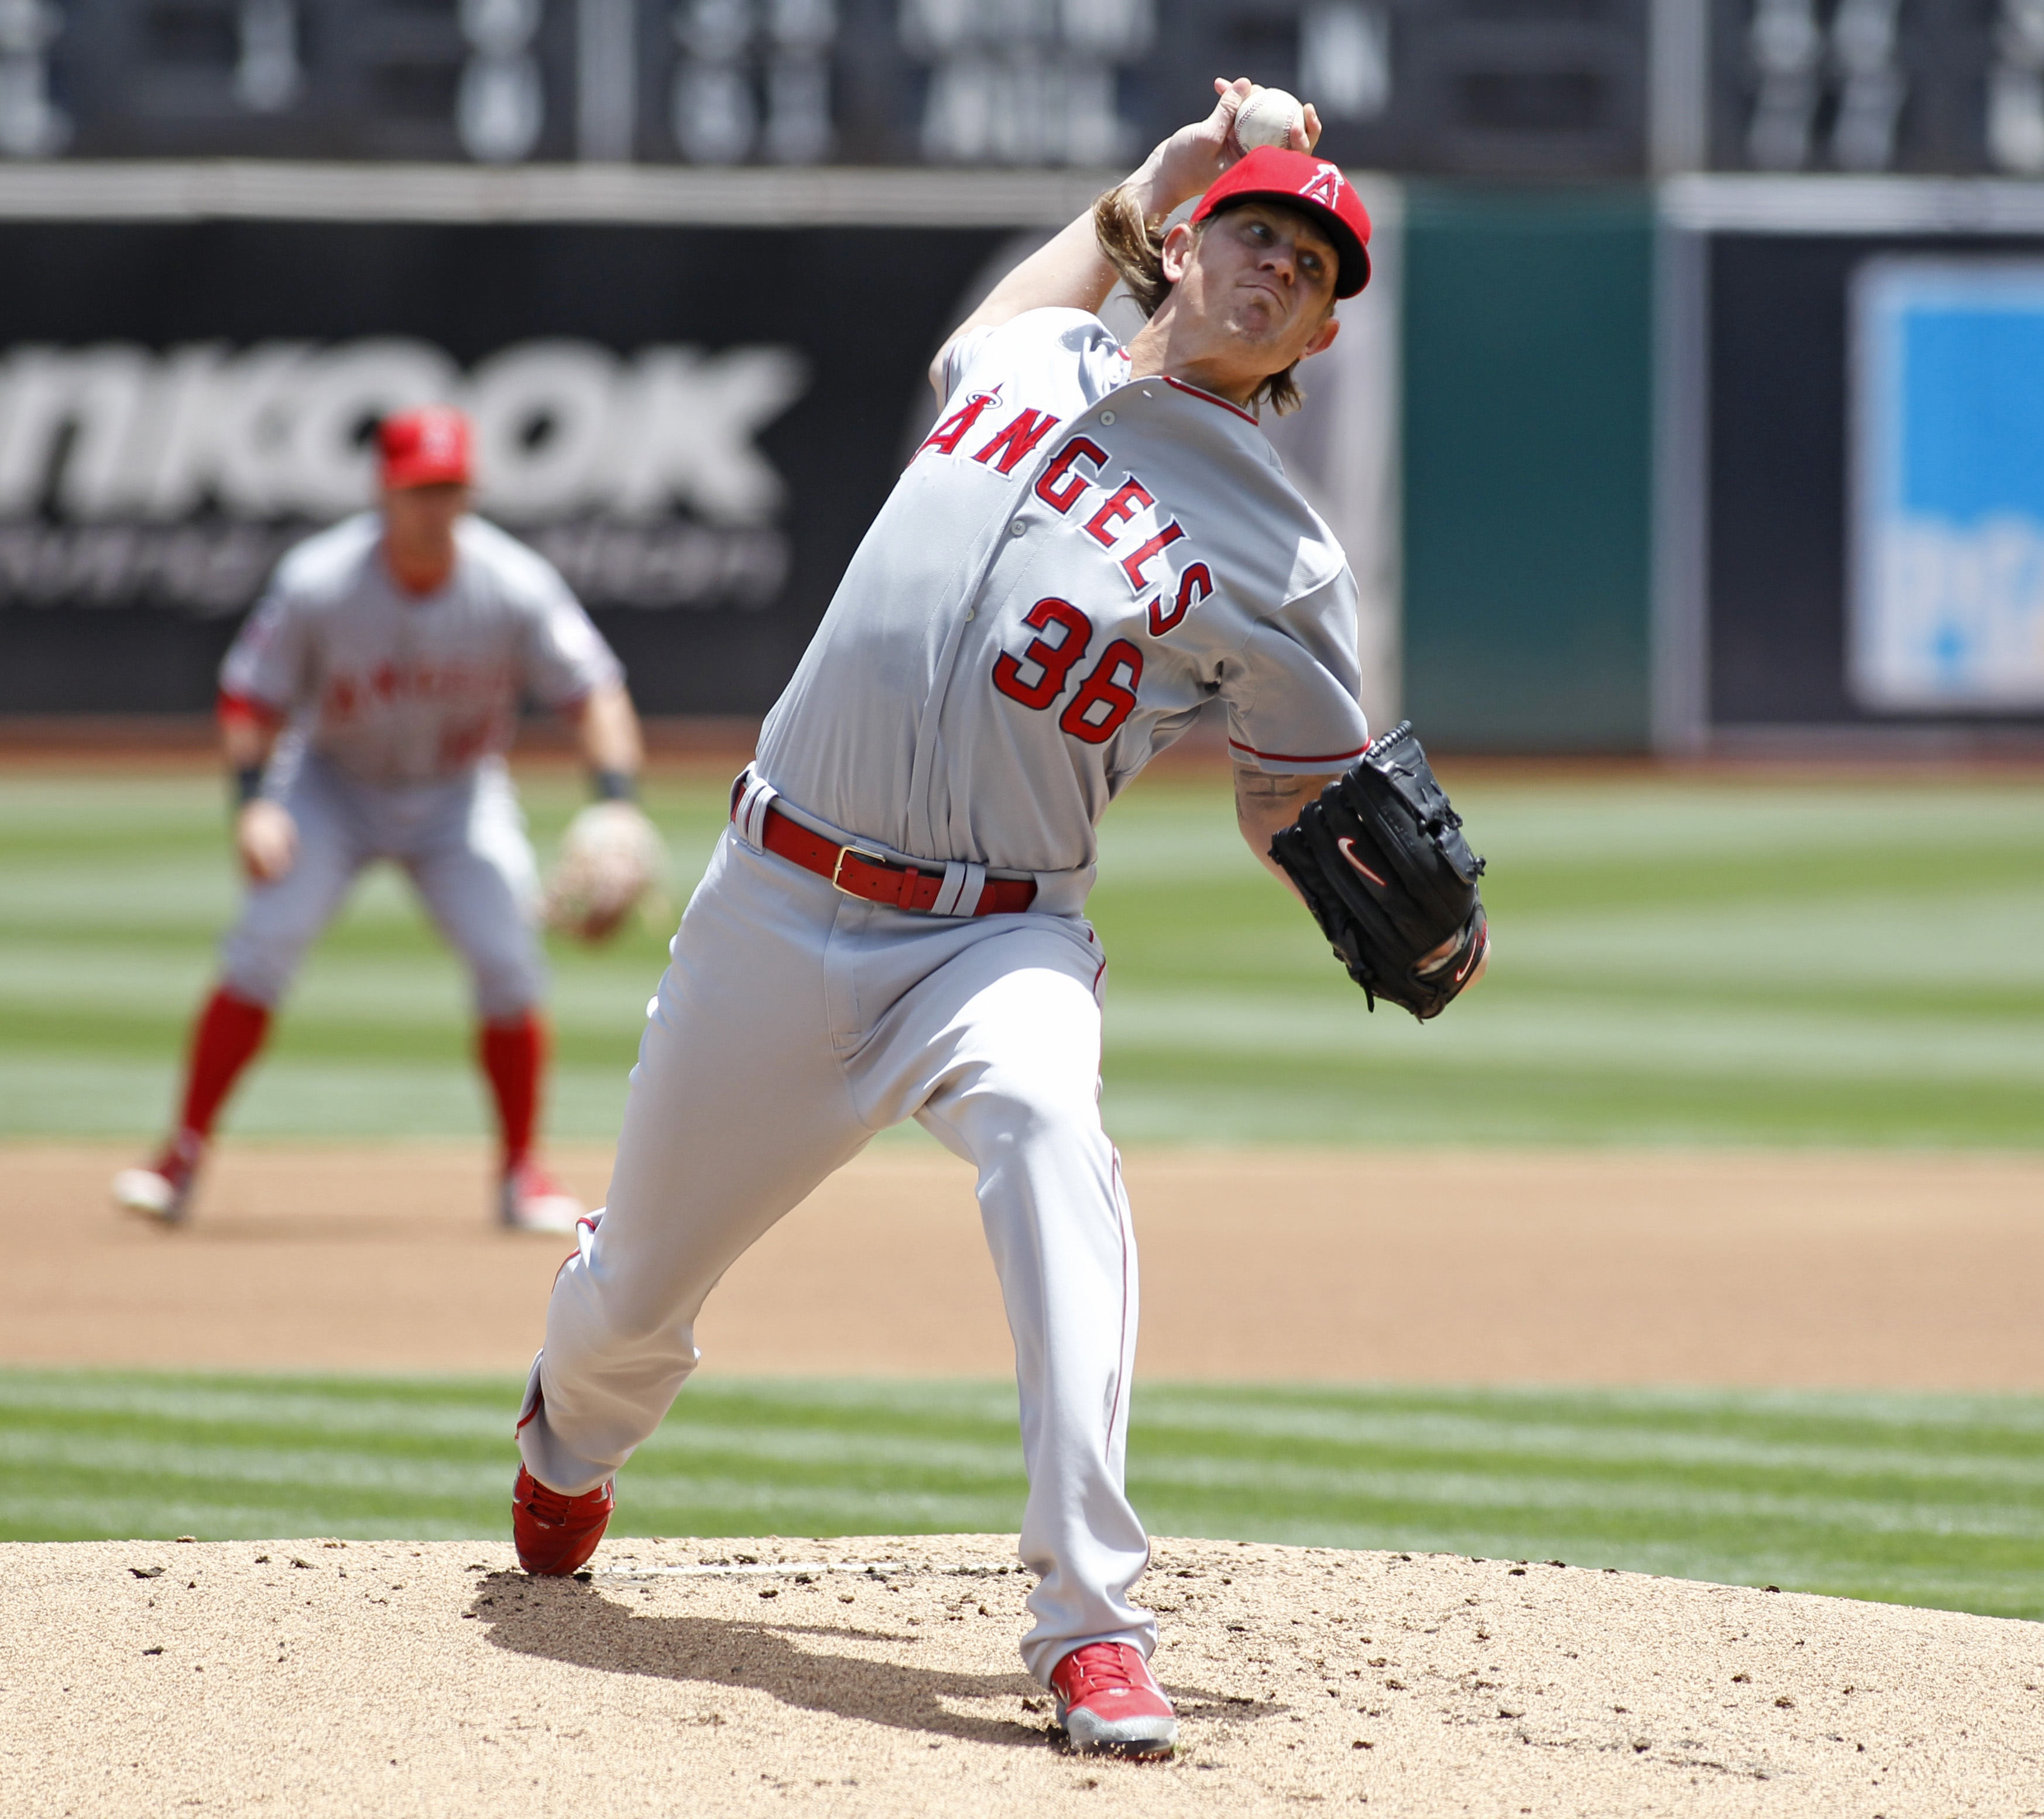 Los Angeles Angels pitcher Jered Weaver throws to the Oakland Athletics during the first inning of a baseball game, Saturday, June 20, 2015, in Oakland, Calif.  (AP Photo/George Nikitin)